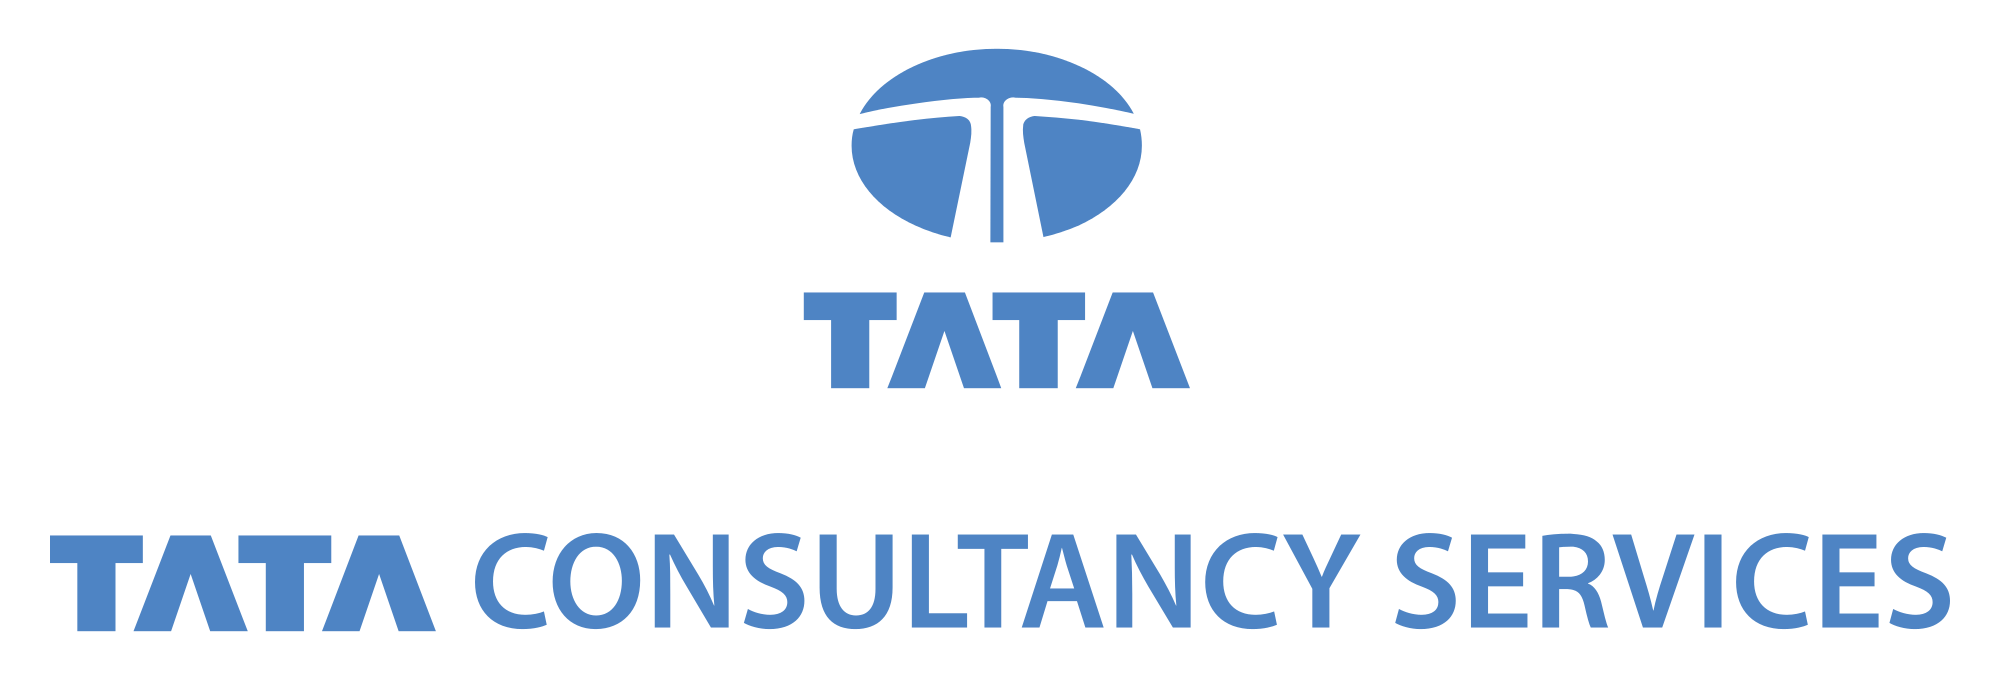 Tata Consultancy Services Qatar SSC